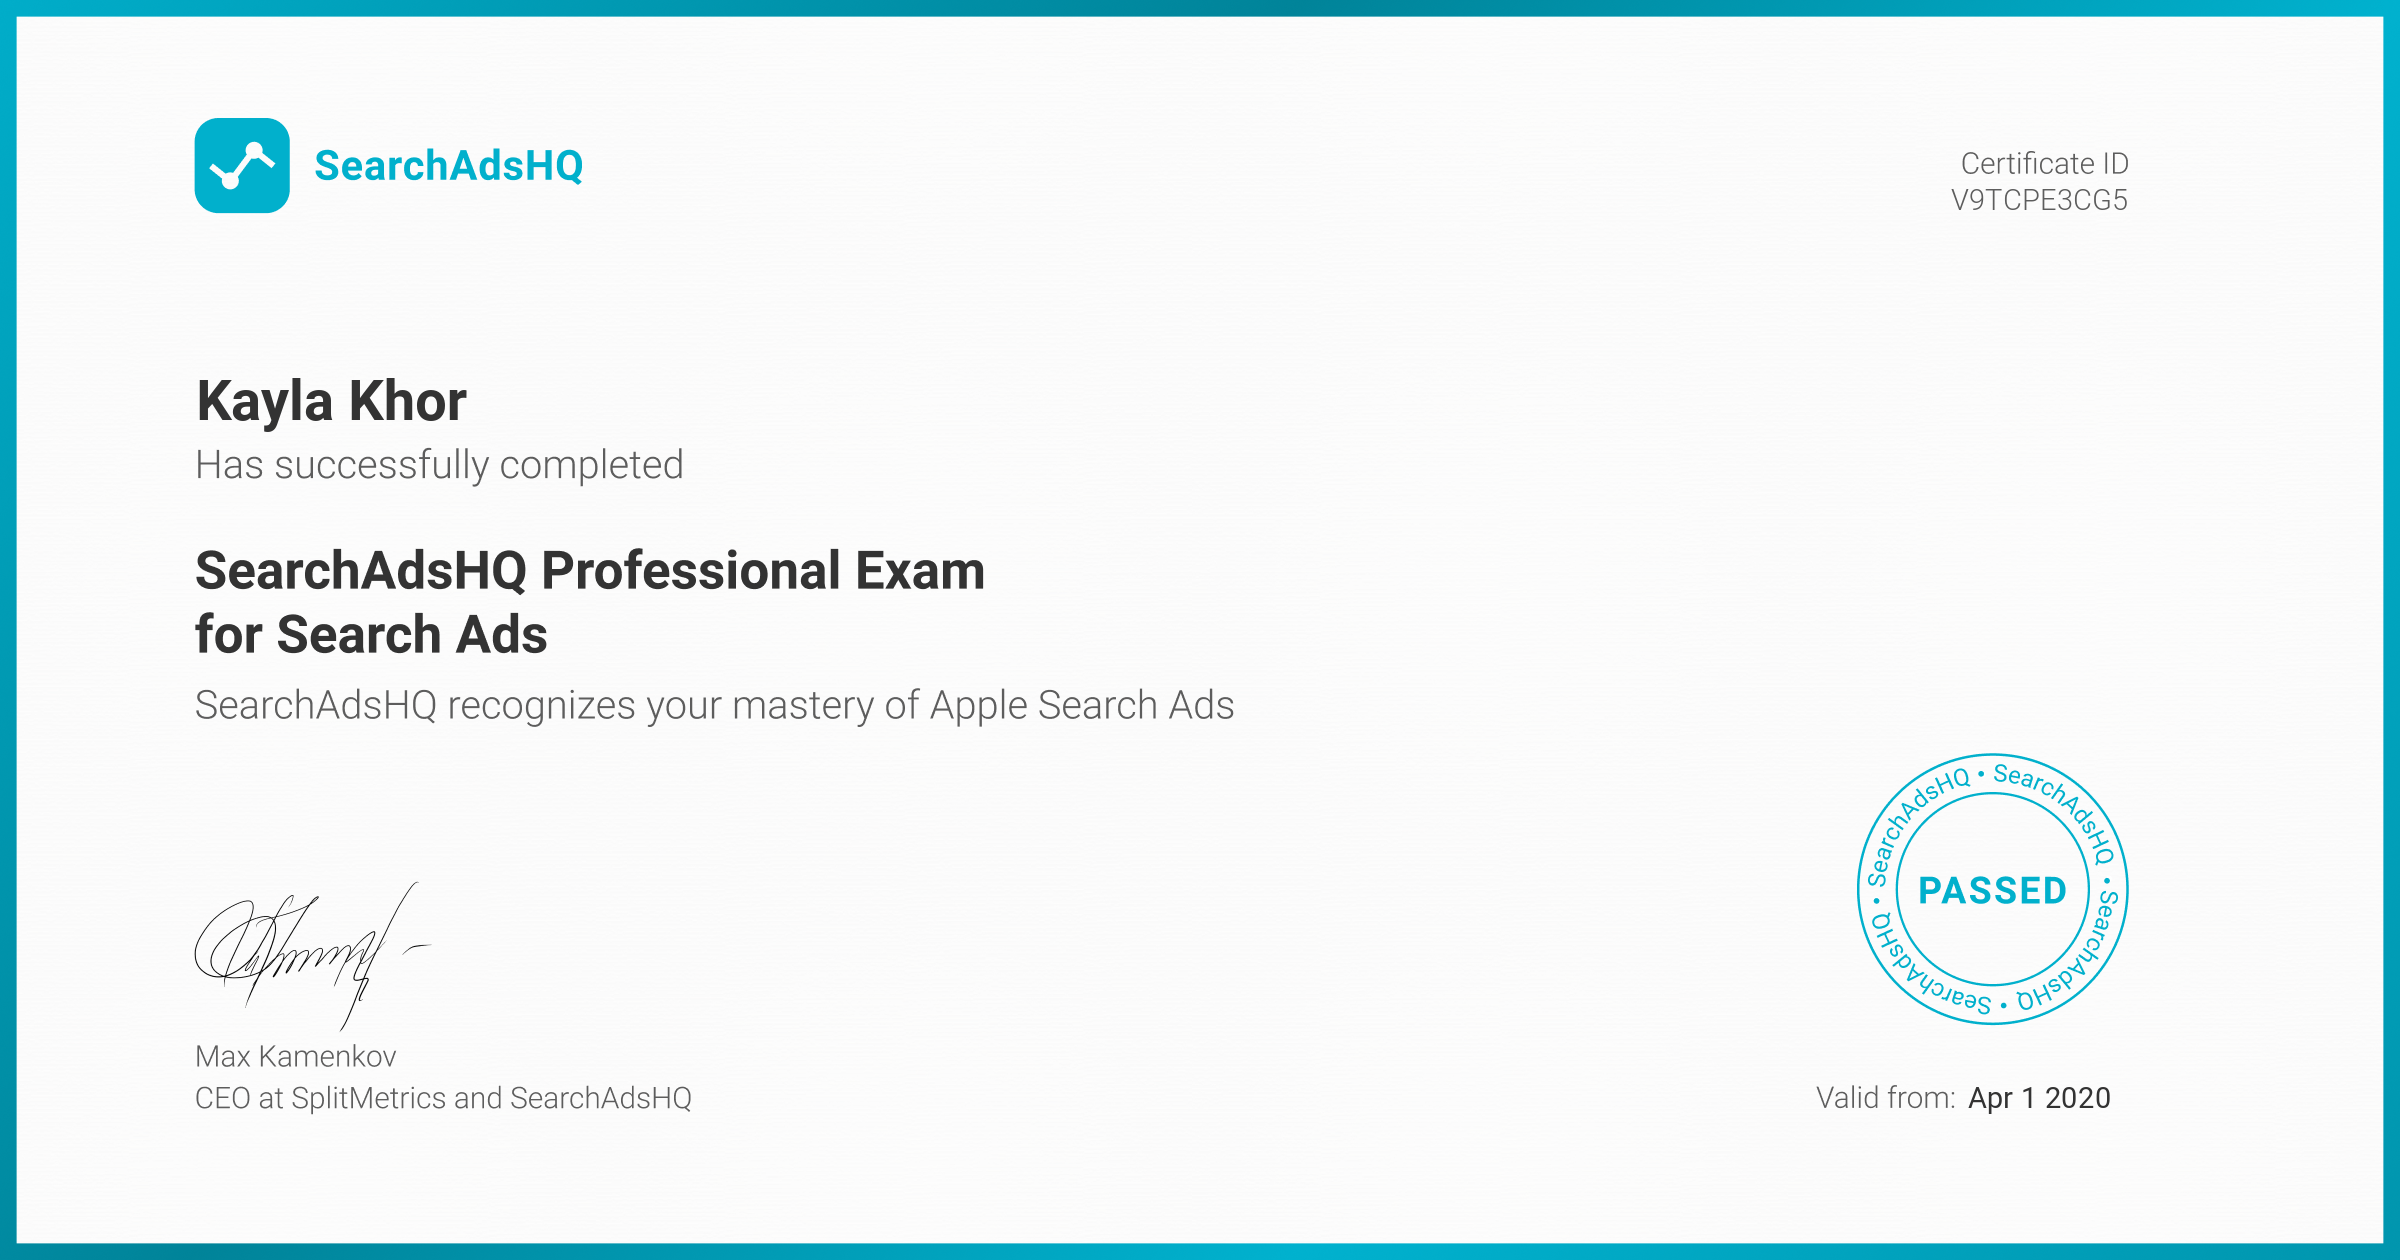 Certificate for Kayla Khor | SearchAdsHQ Professional Exam for Search Ads